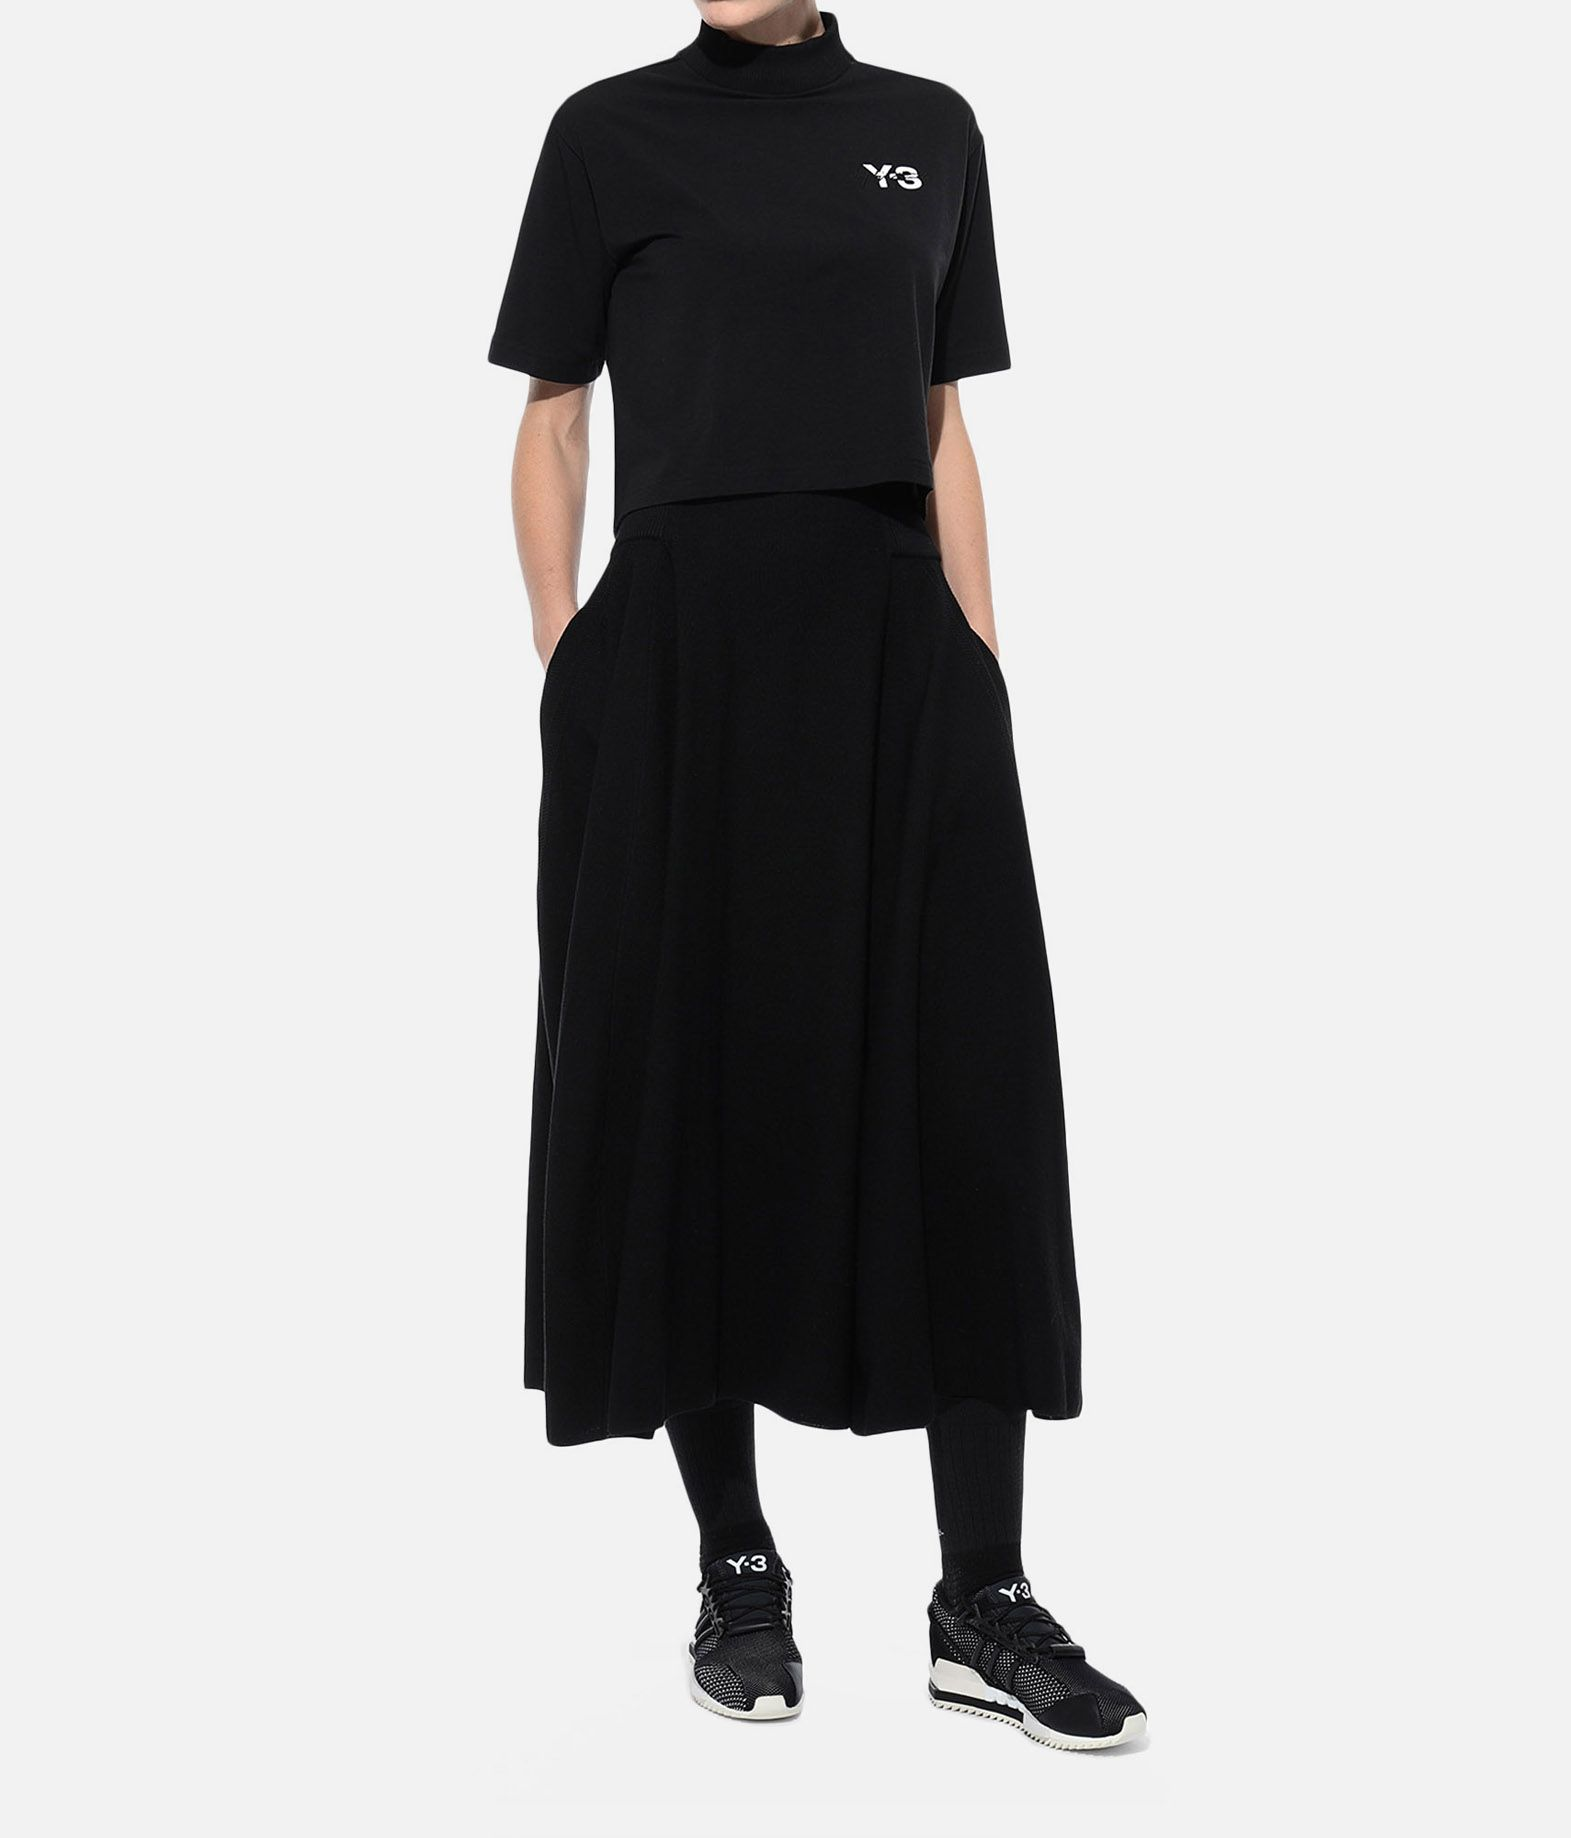 Y-3 Y-3 SIGNATURE CROP TEE Short sleeve t-shirt Woman a